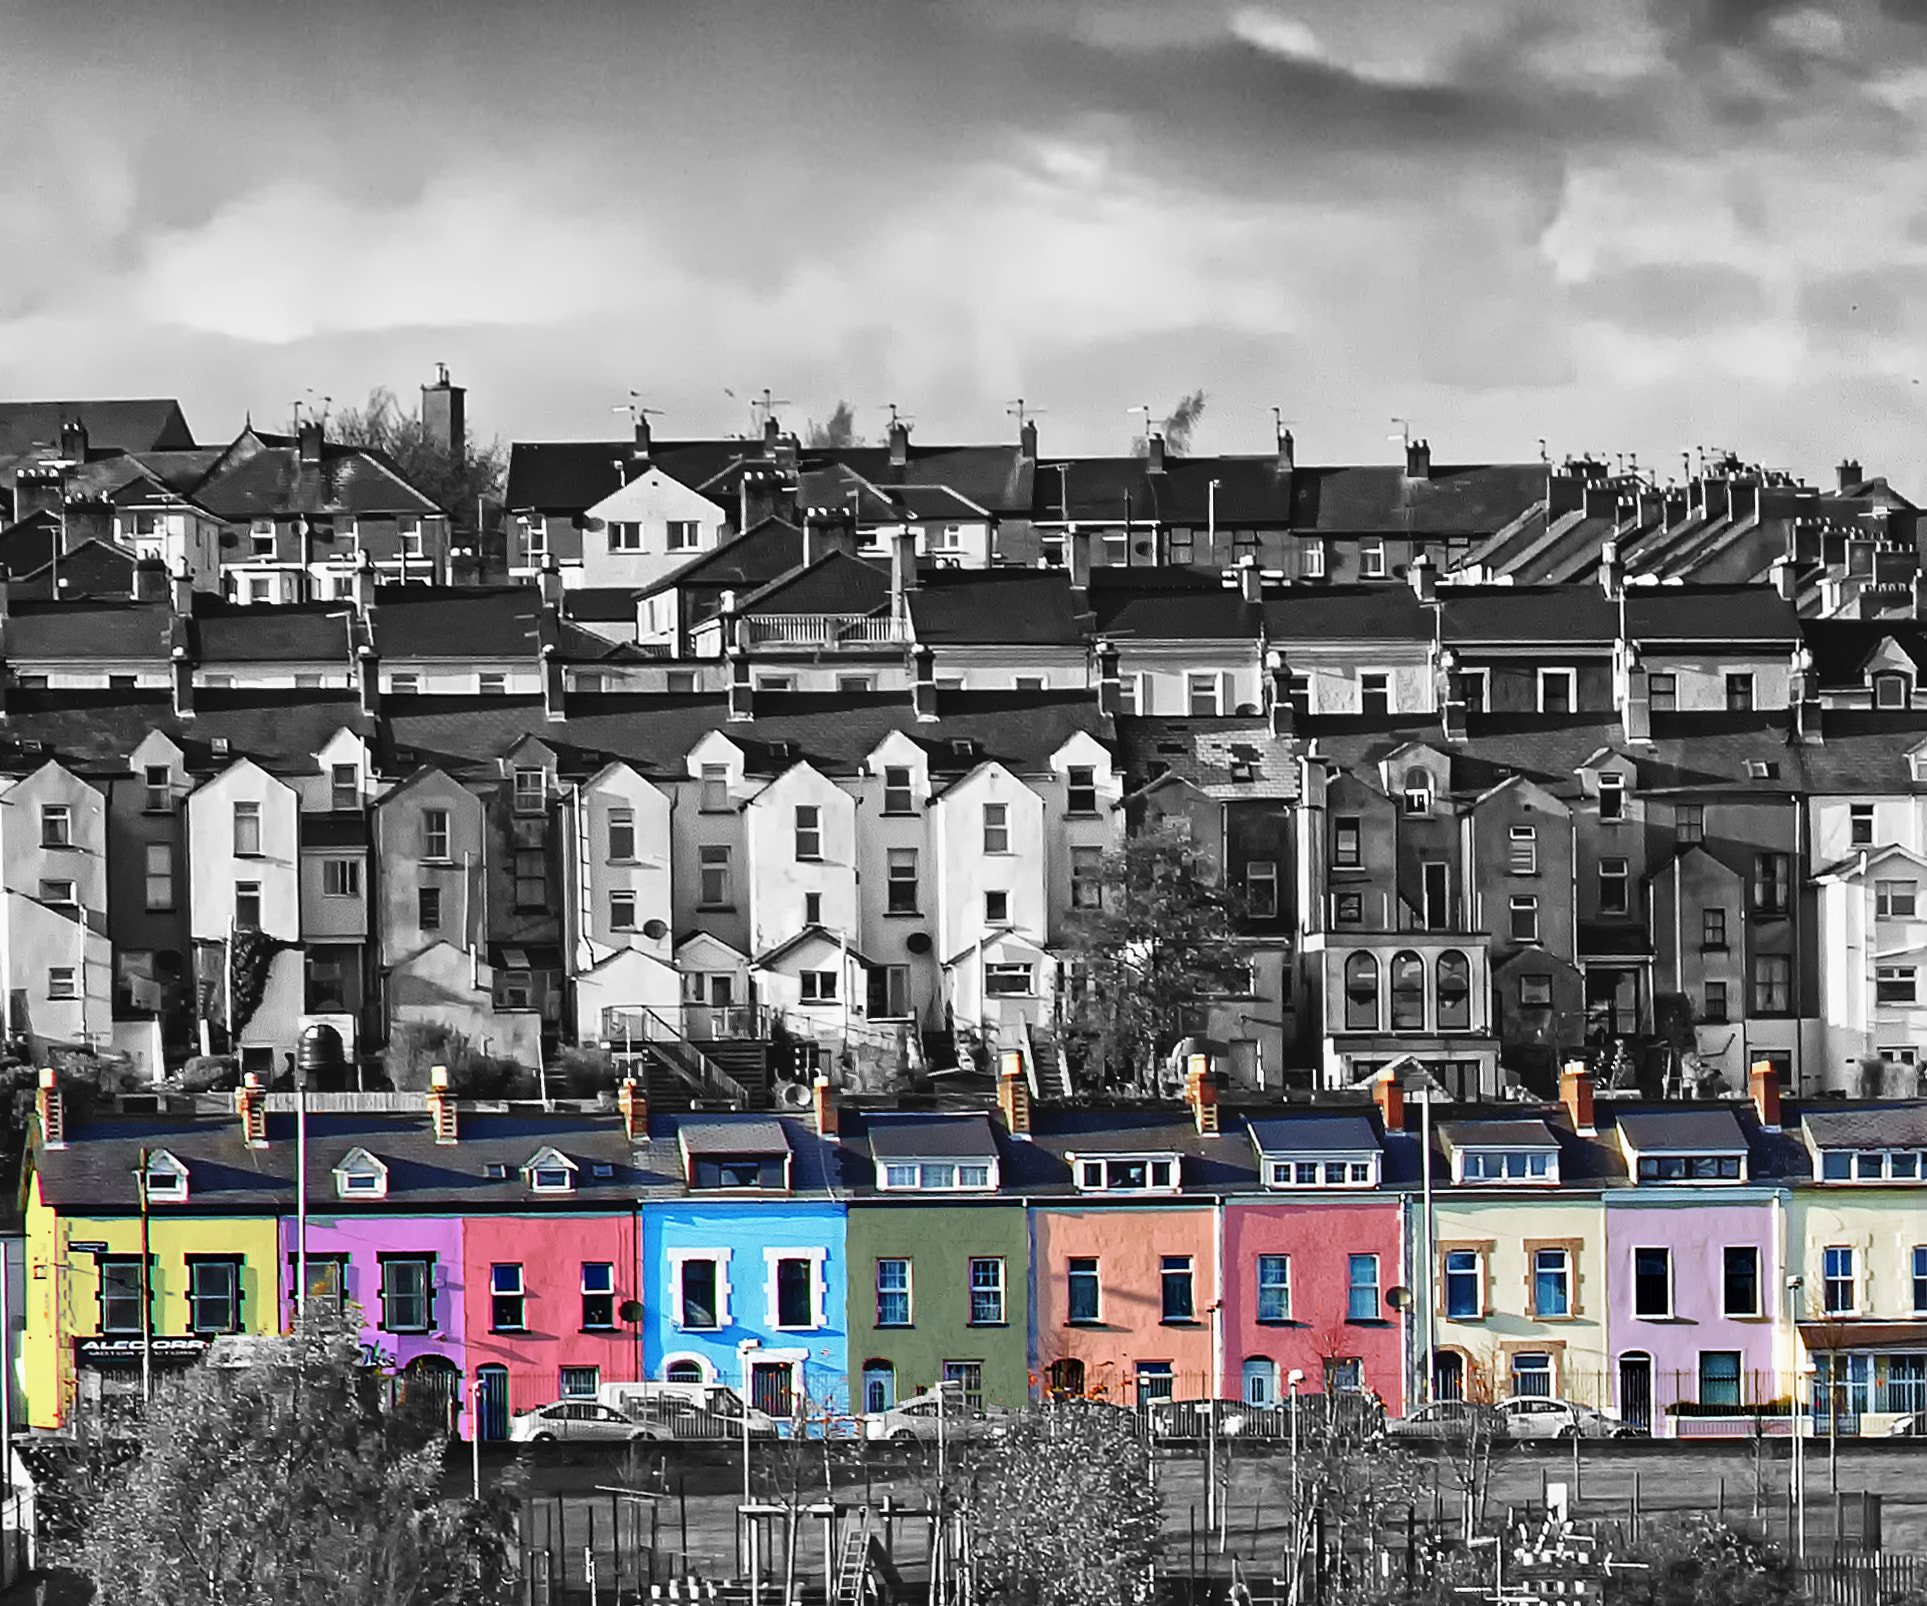 Photograph The Colourful Bogside by KERRY ODONNELL on 500px